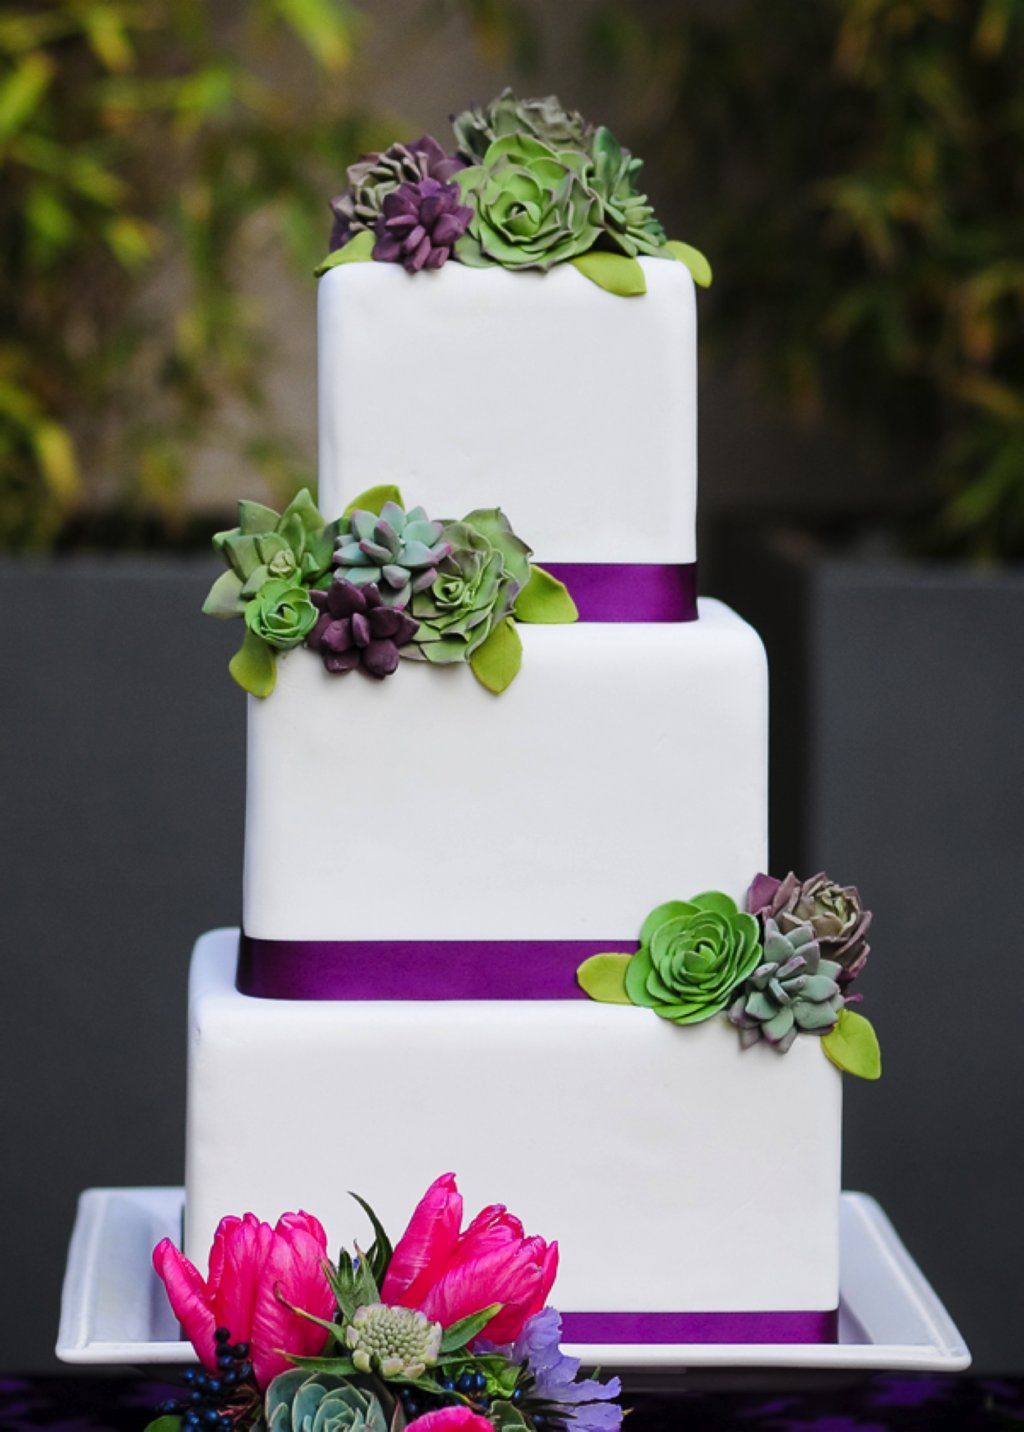 White-wedding-cake-eco-friendly-succulents-pink-purple.full